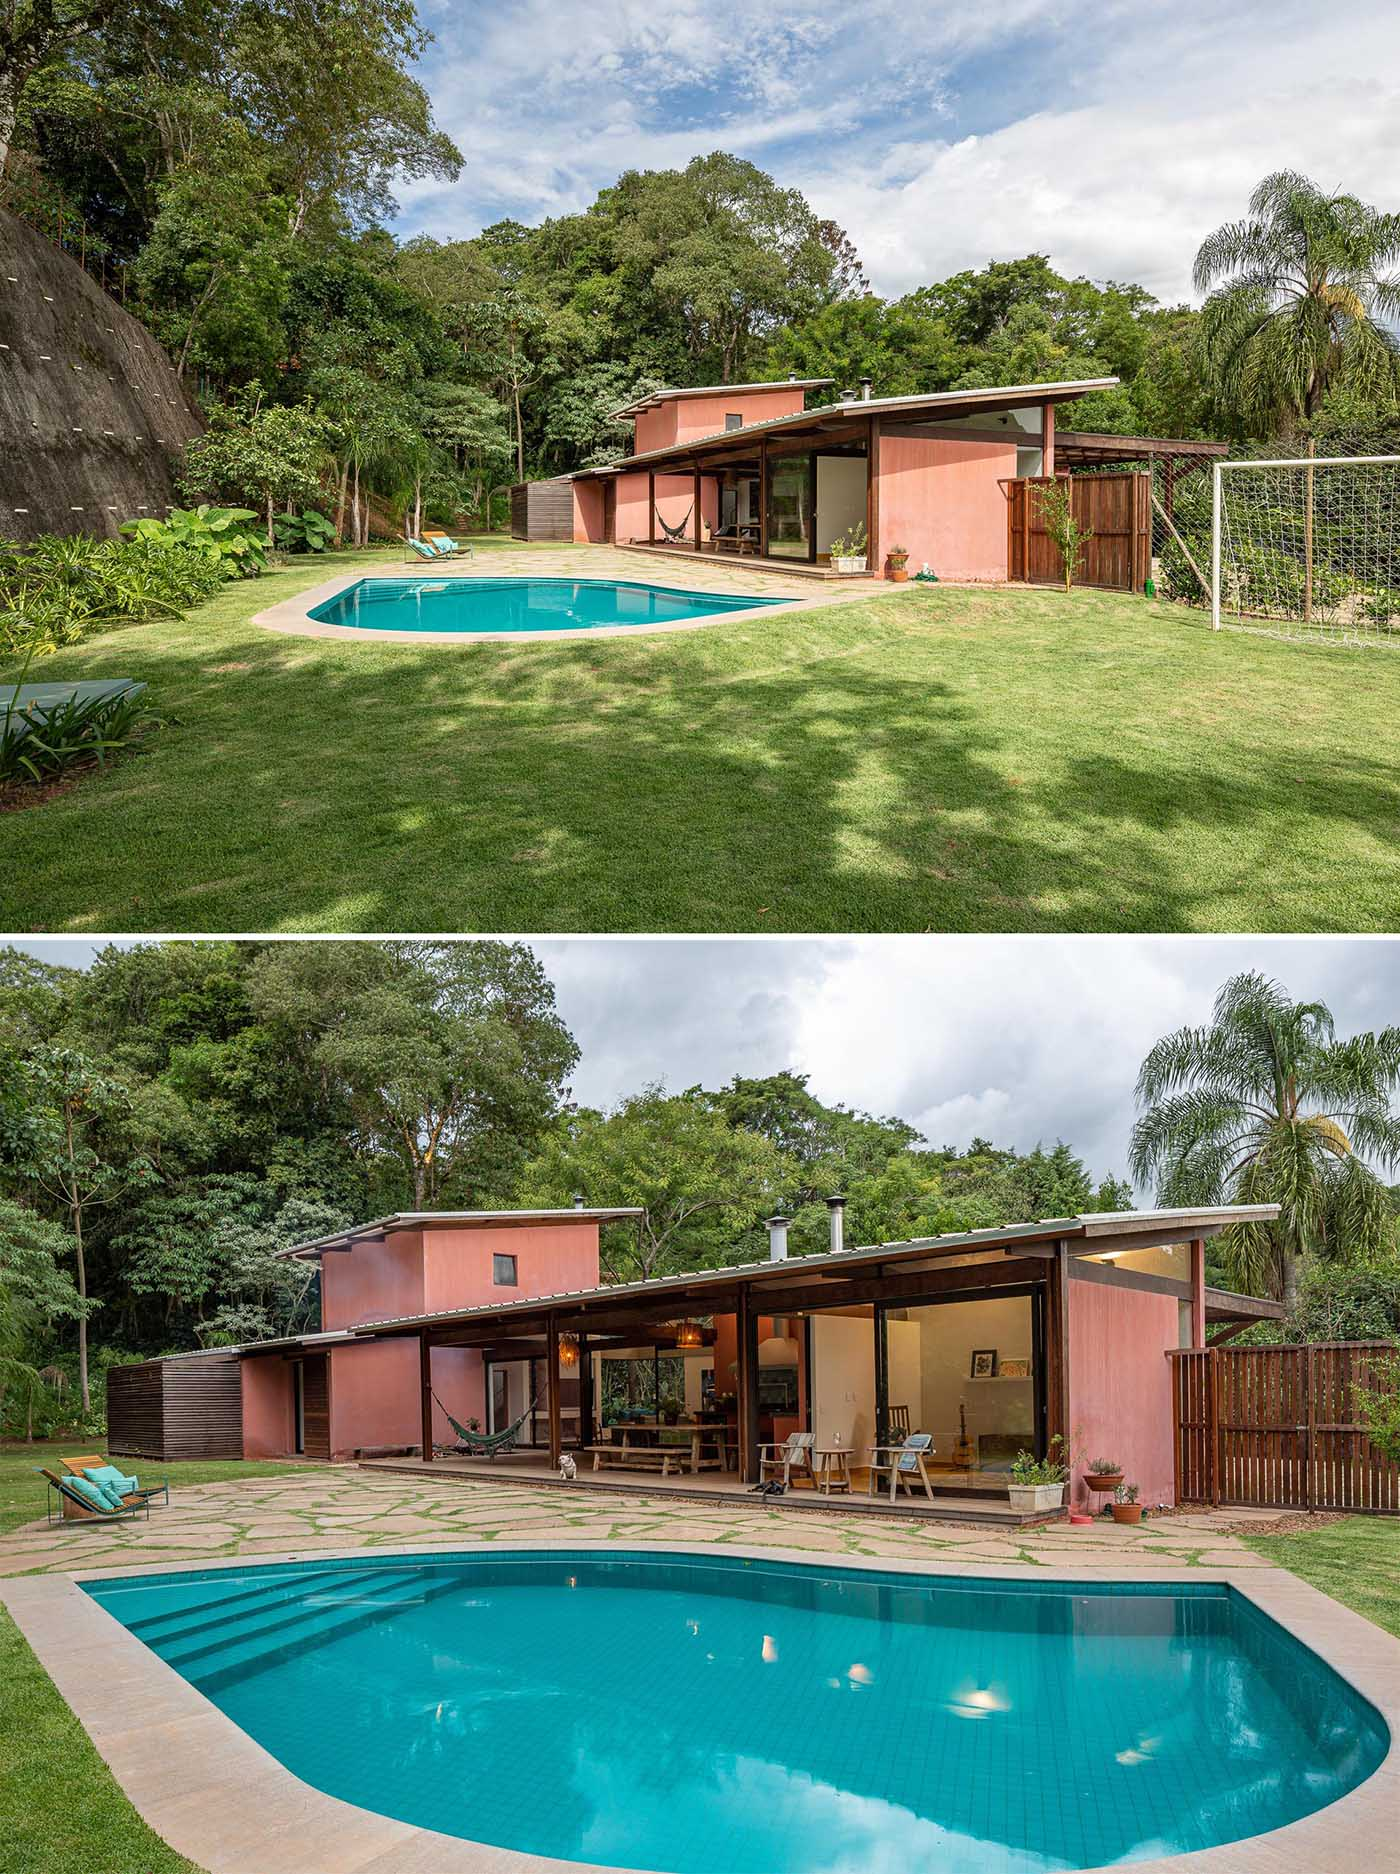 This contemporary home has a sloped roof, large yard, and swimming pool.